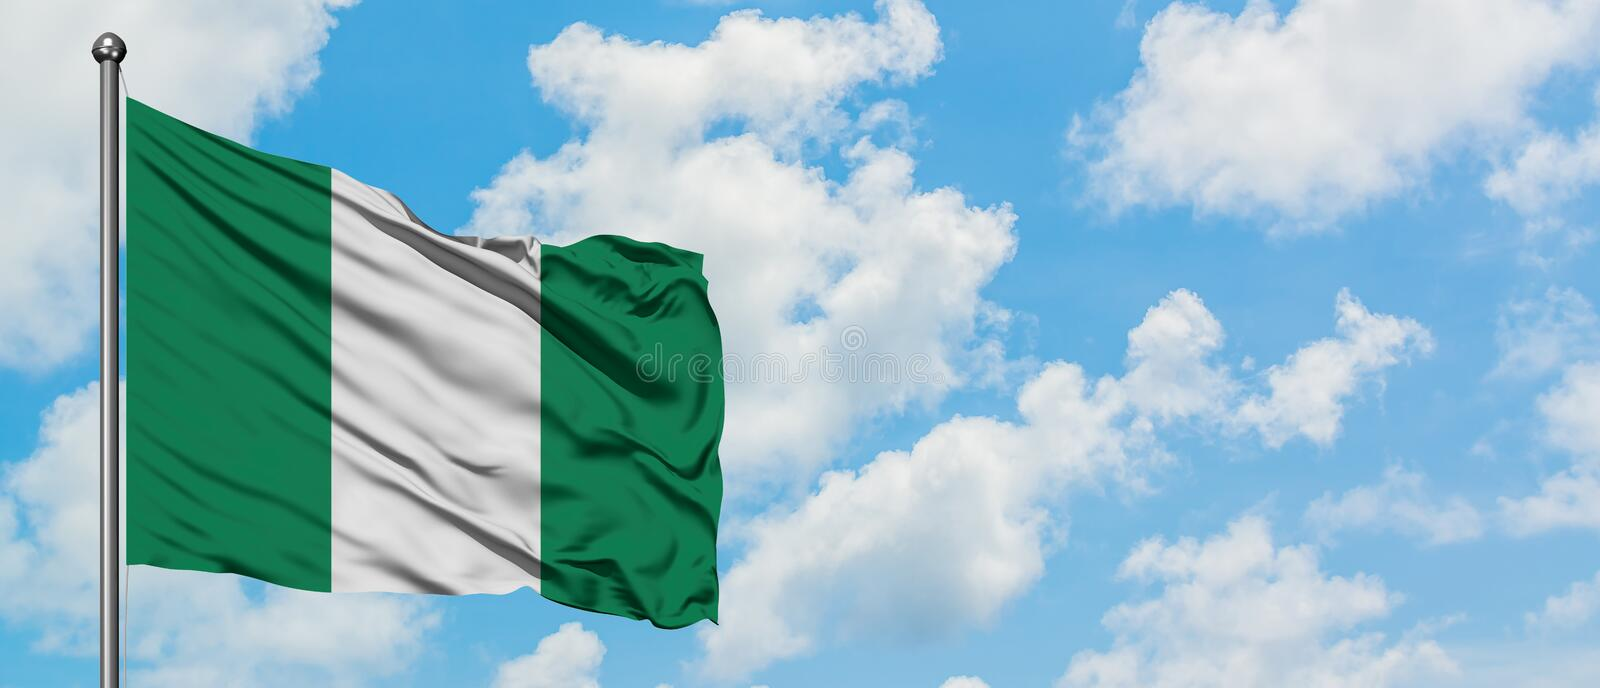 Nigeria flag waving in the wind against white cloudy blue sky. Diplomacy concept, international relations.  royalty free stock image